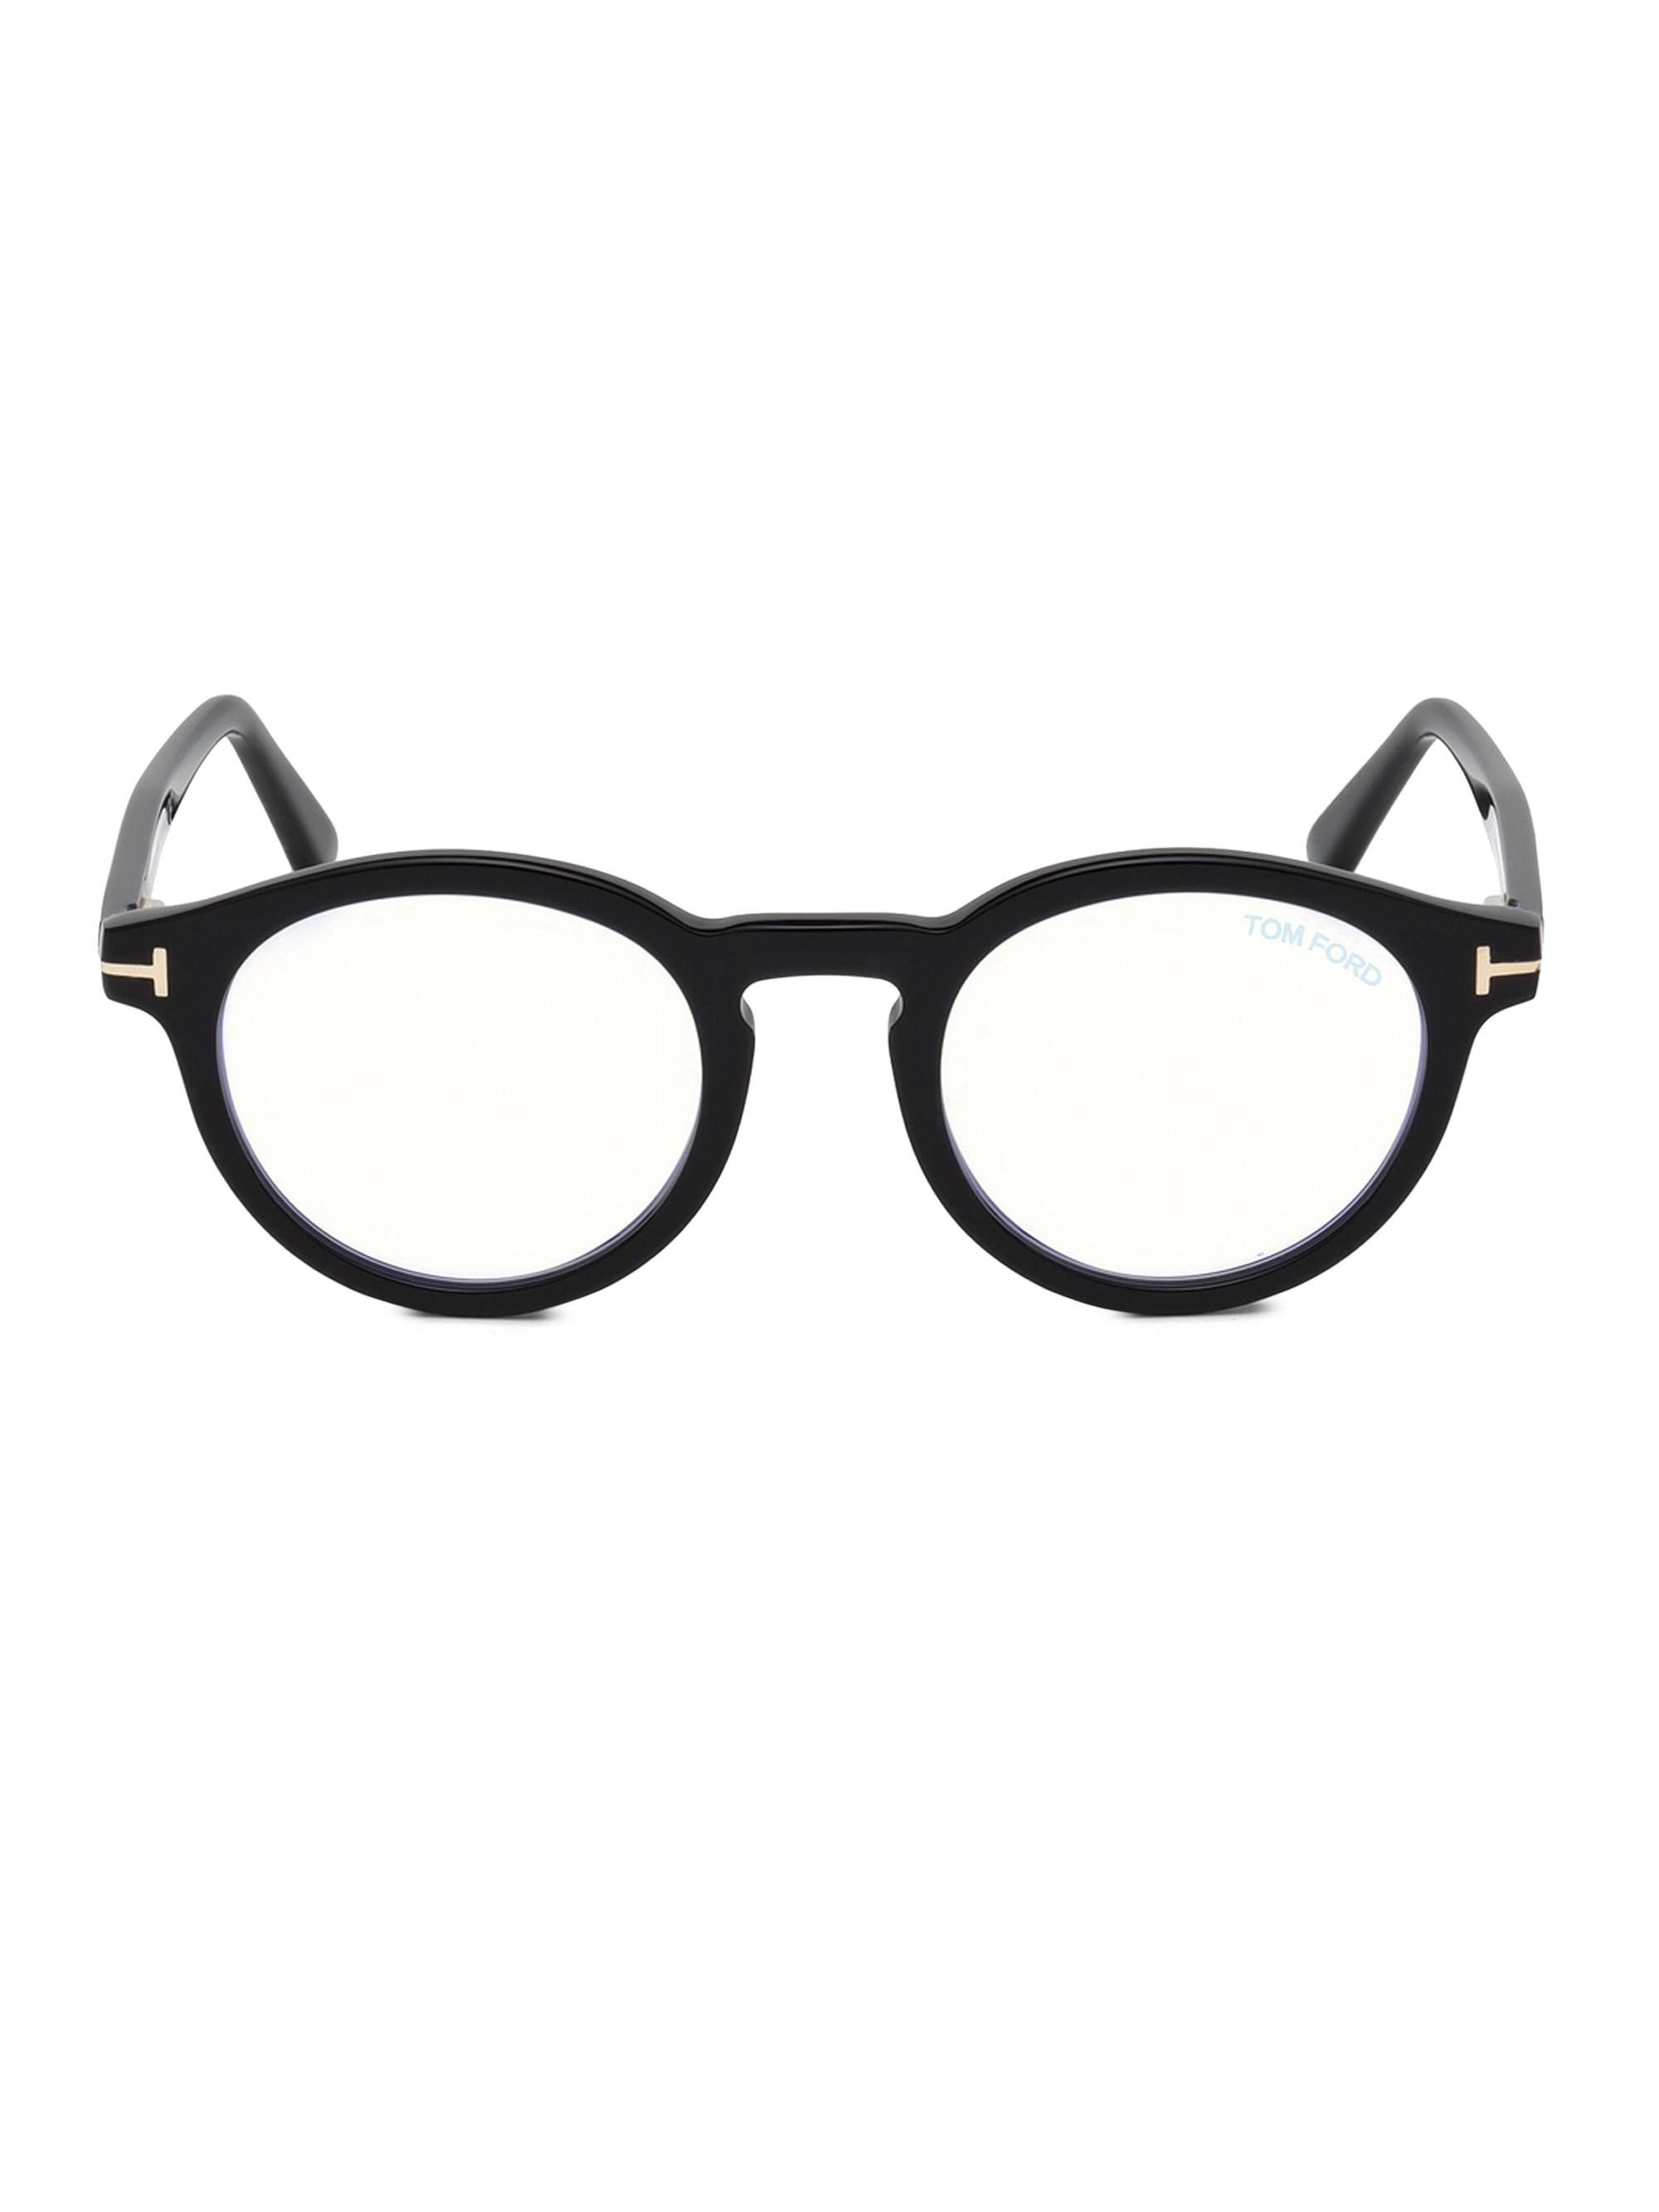 4f7fdbadab2 Lyst - Tom Ford 48mm Round Optical Glasses in Black for Men - Save 7%